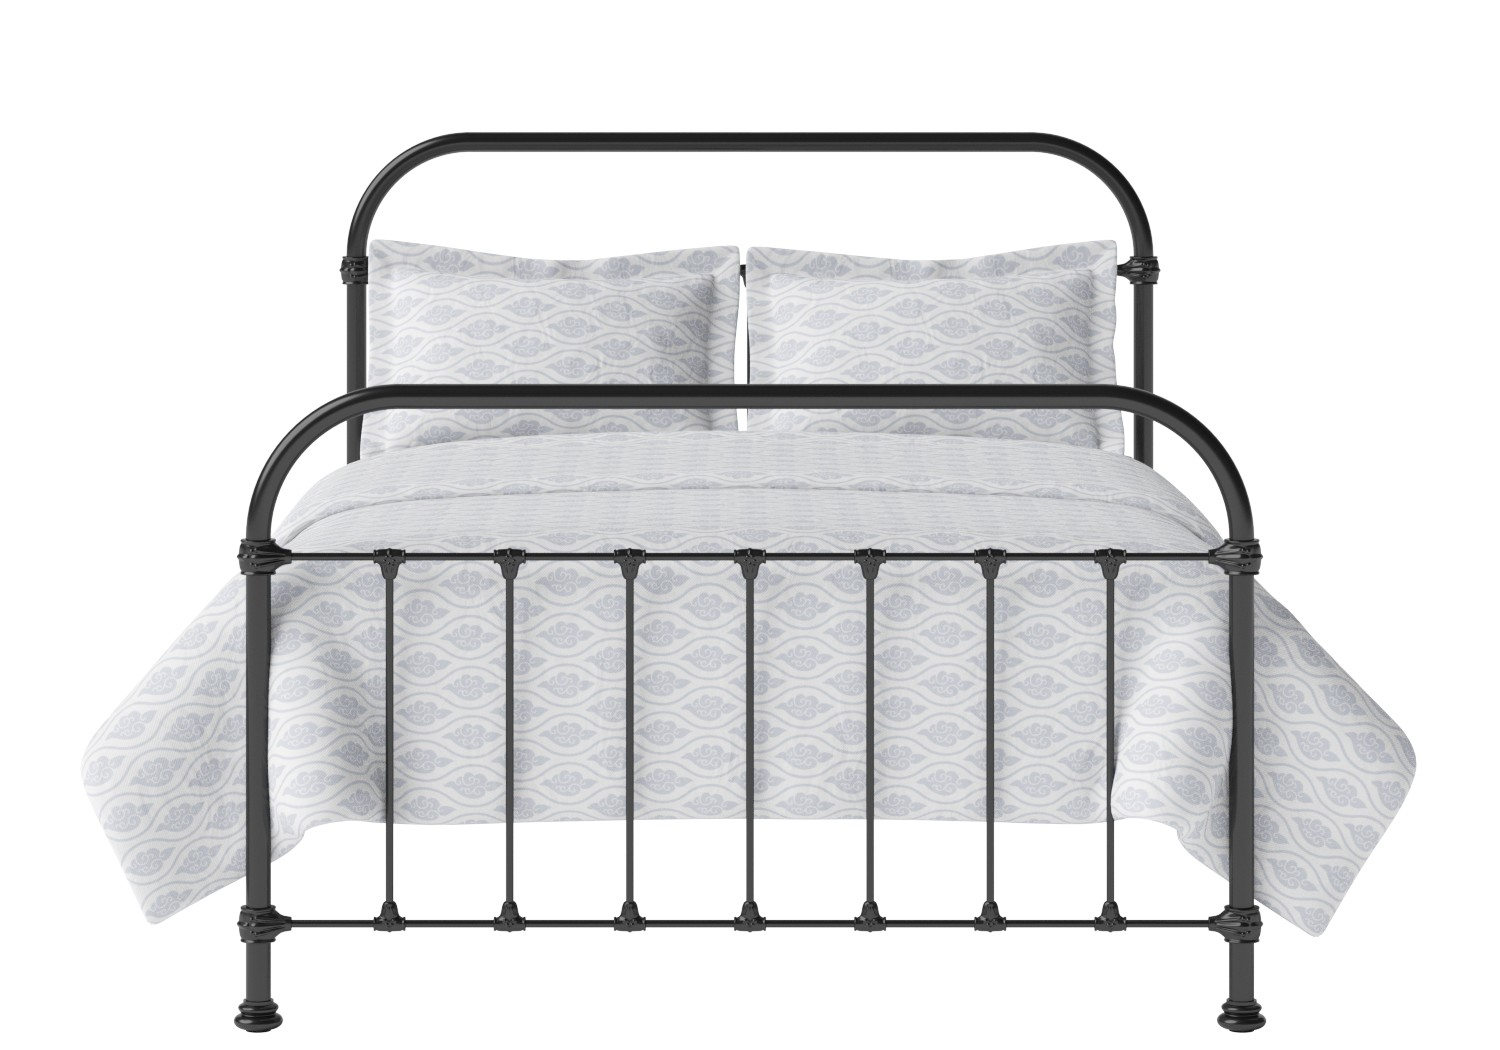 Timolin Iron/Metal Bed in Satin Black